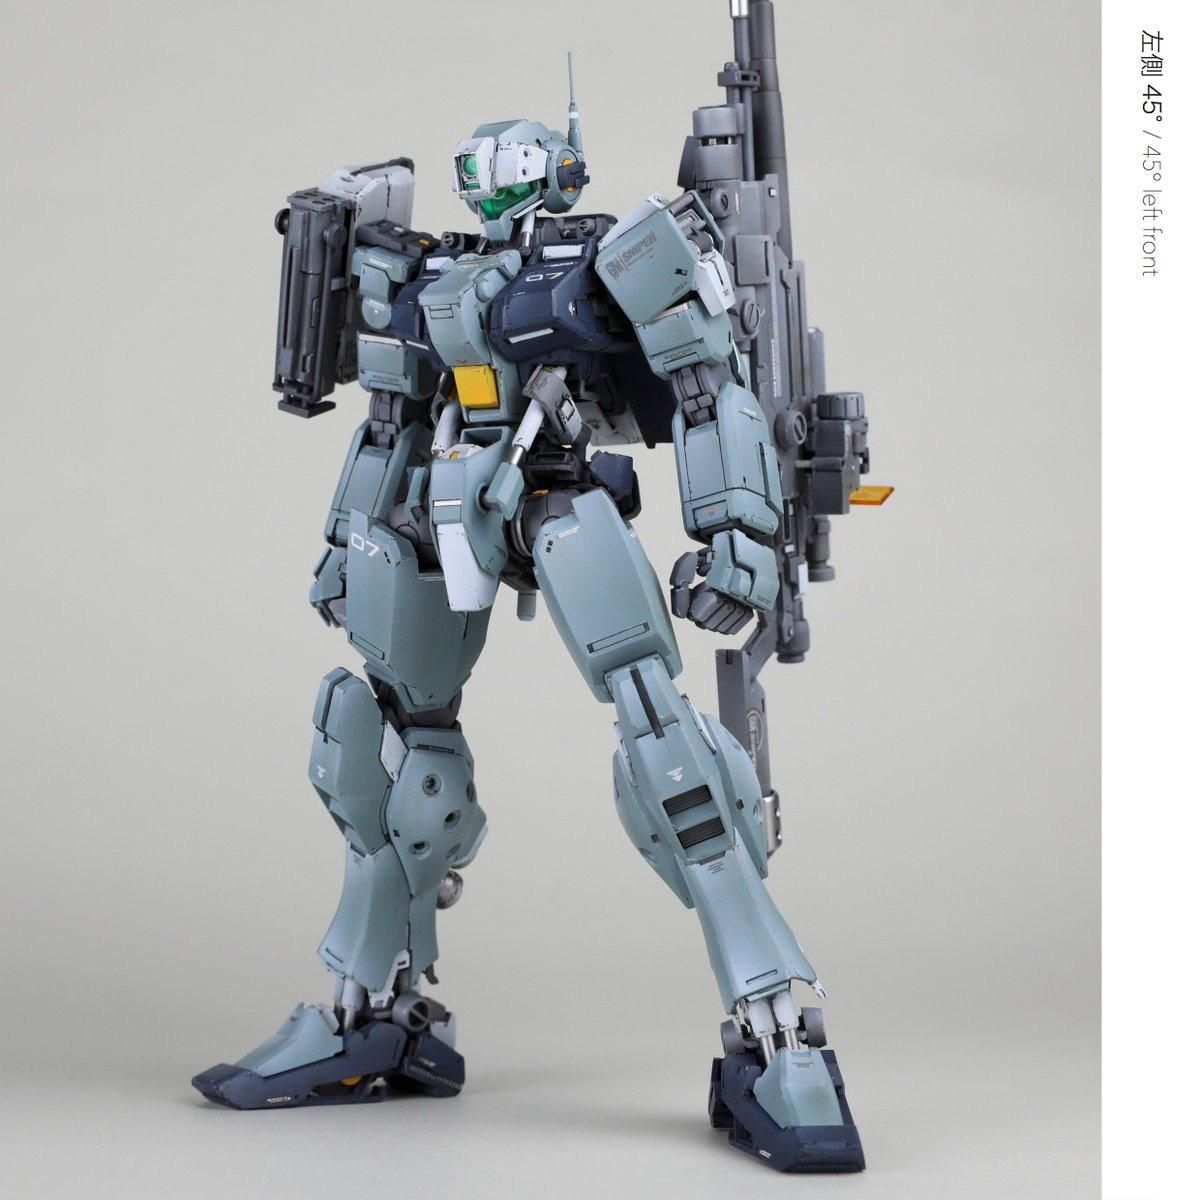 This badass GM sniper i saw on a magazine. GM Sniper PRO